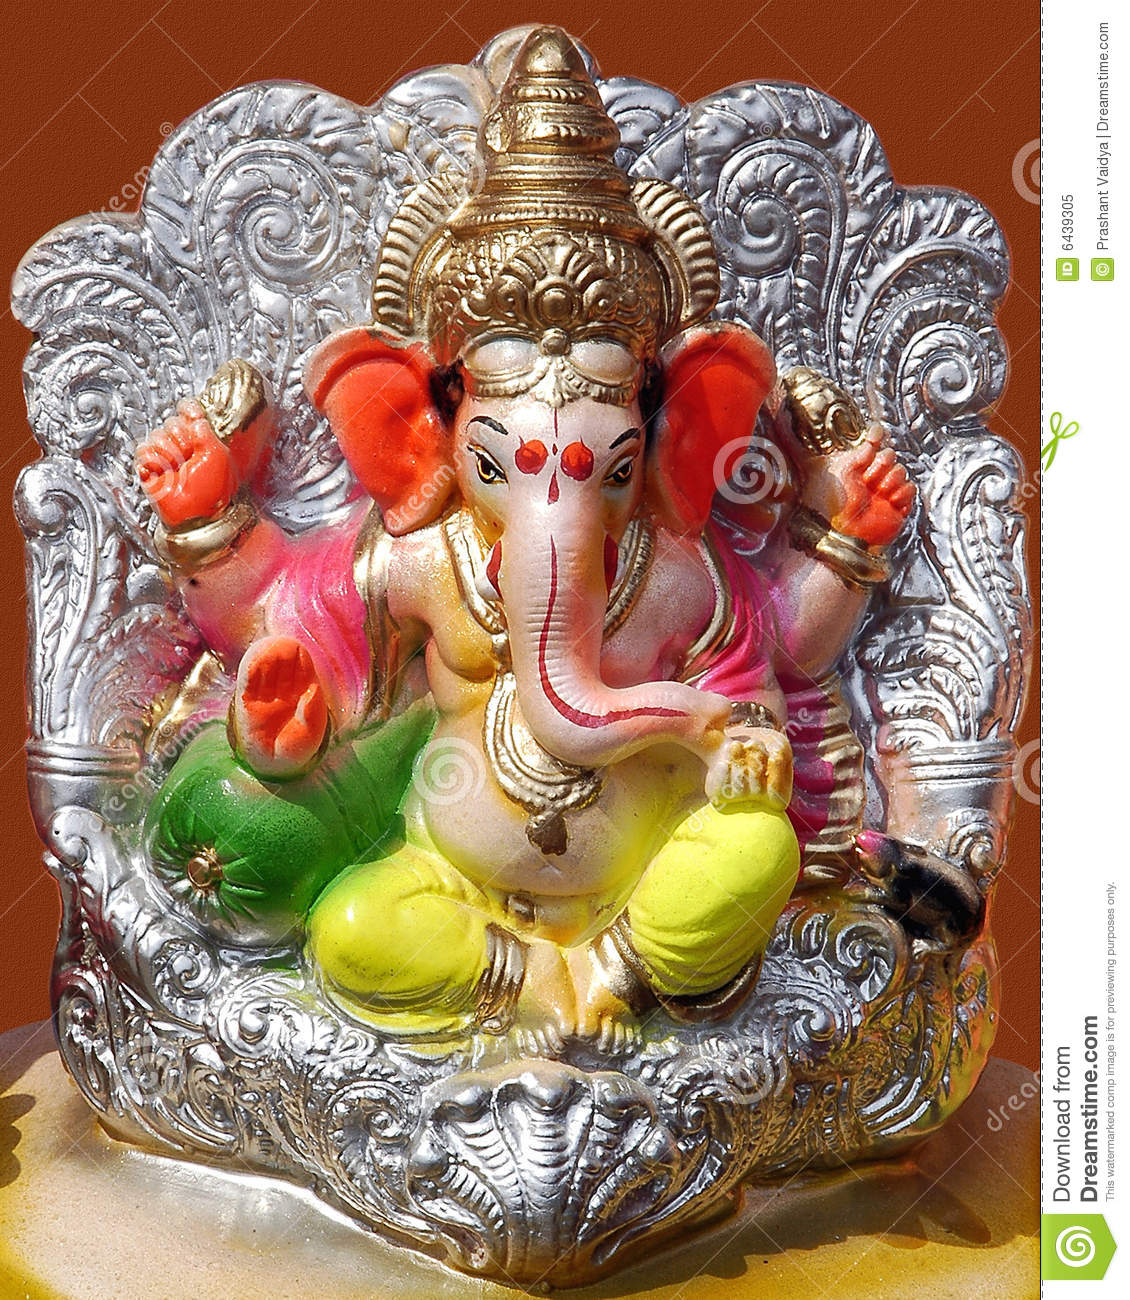 Pana ganesha